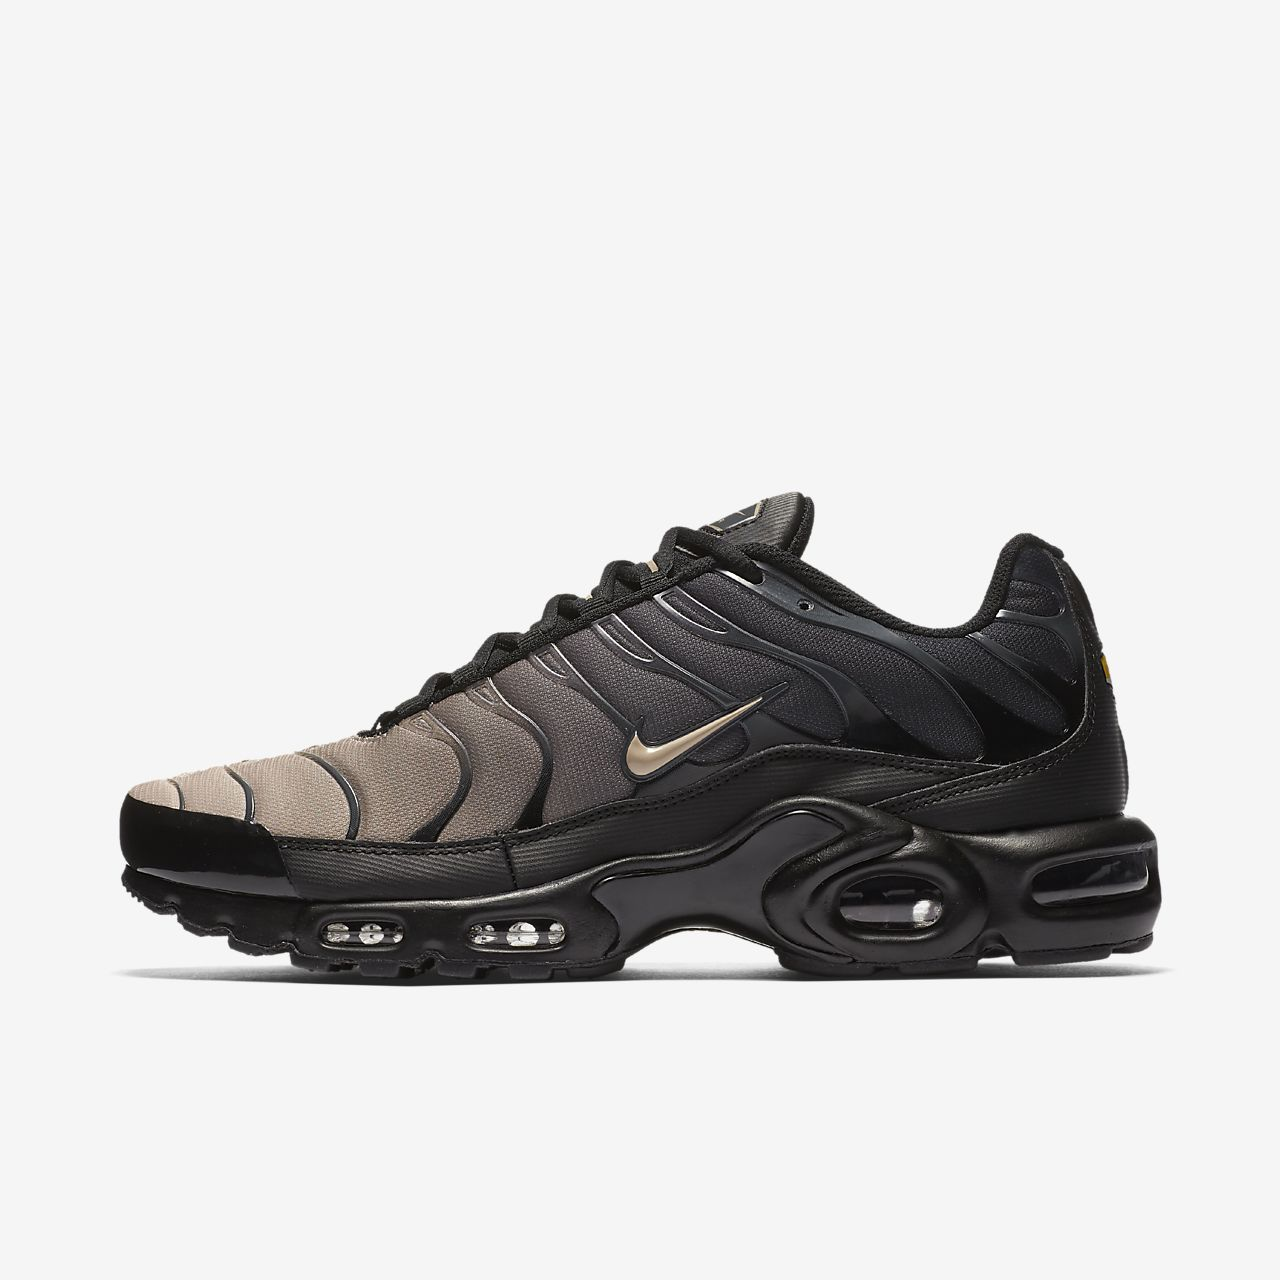 Nike Air Max Plus Men s Shoe,air max n 40 7eaa5f4eaf7